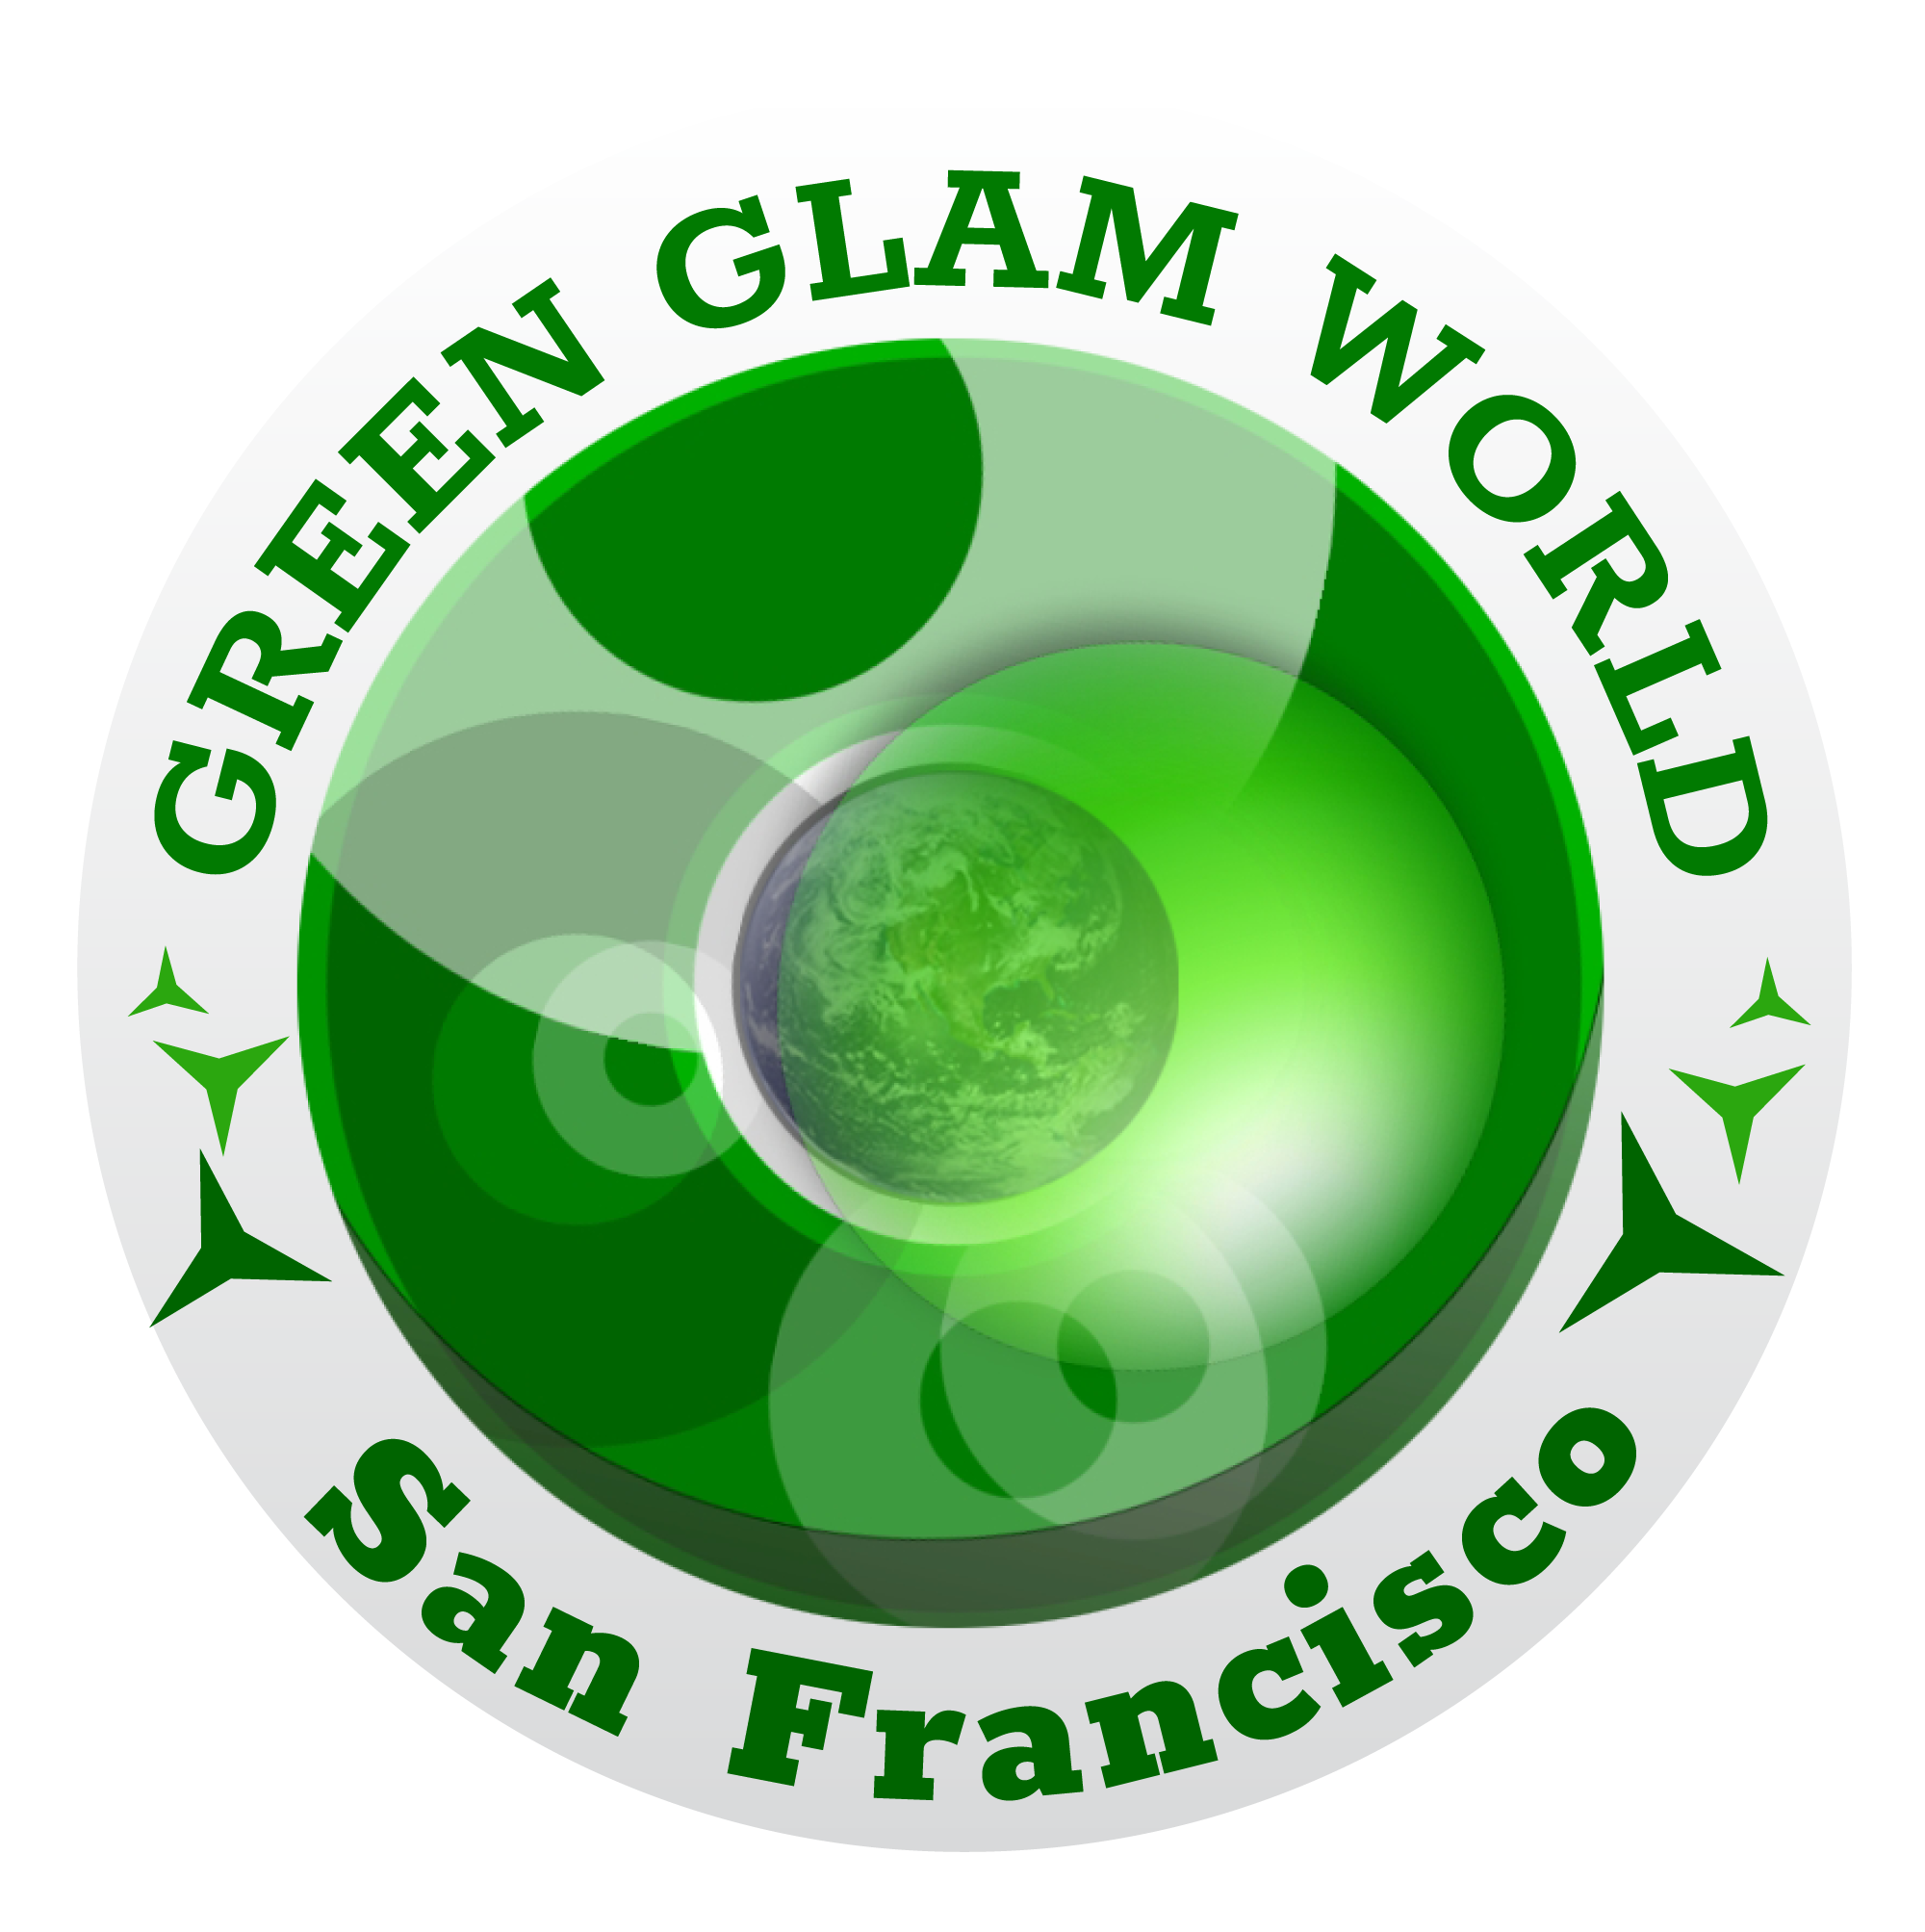 Green Glam World Logo 4